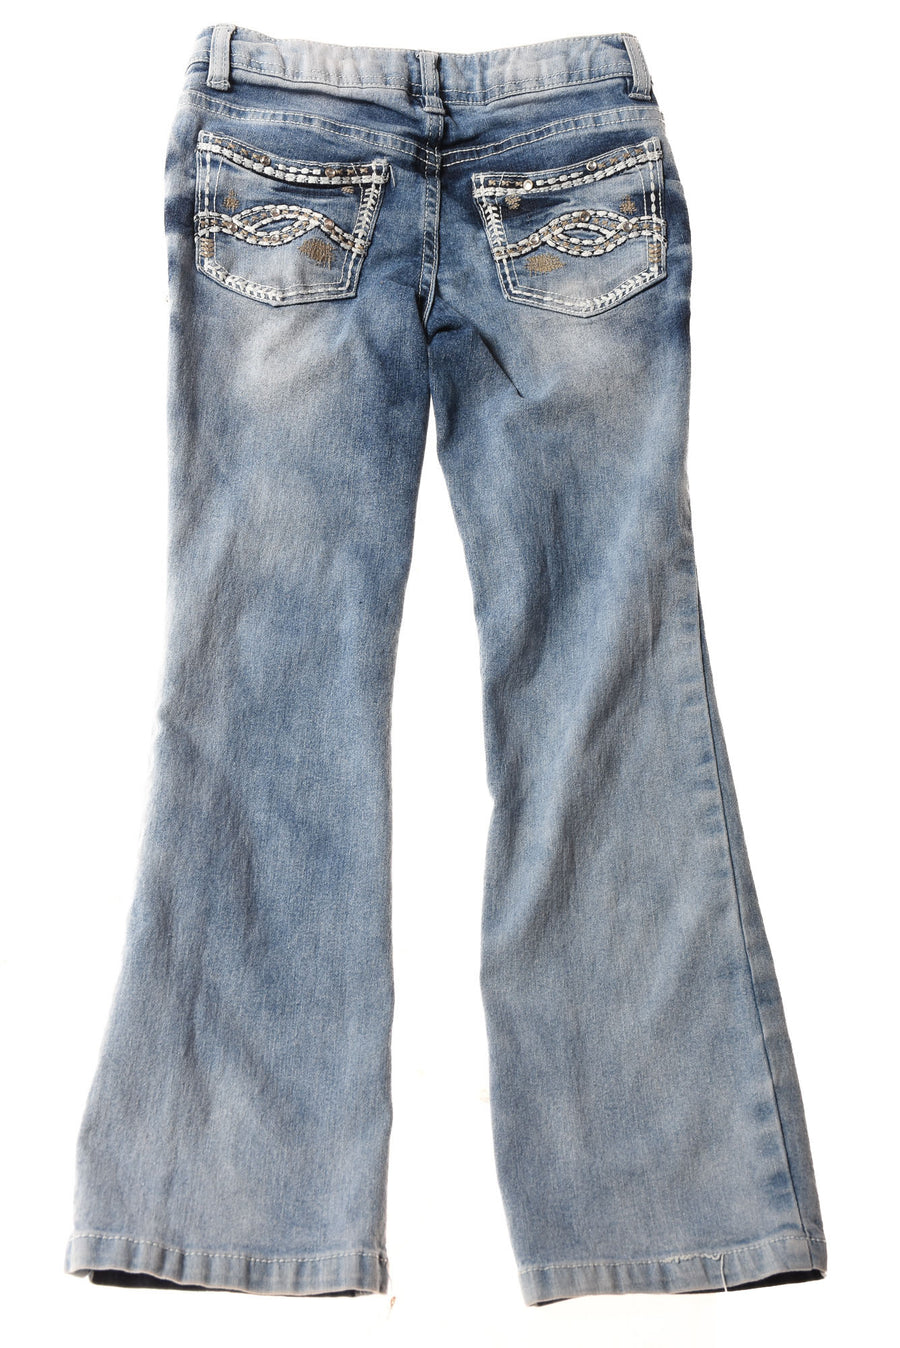 USED Squeeze Girl's Jeans  7 Blue